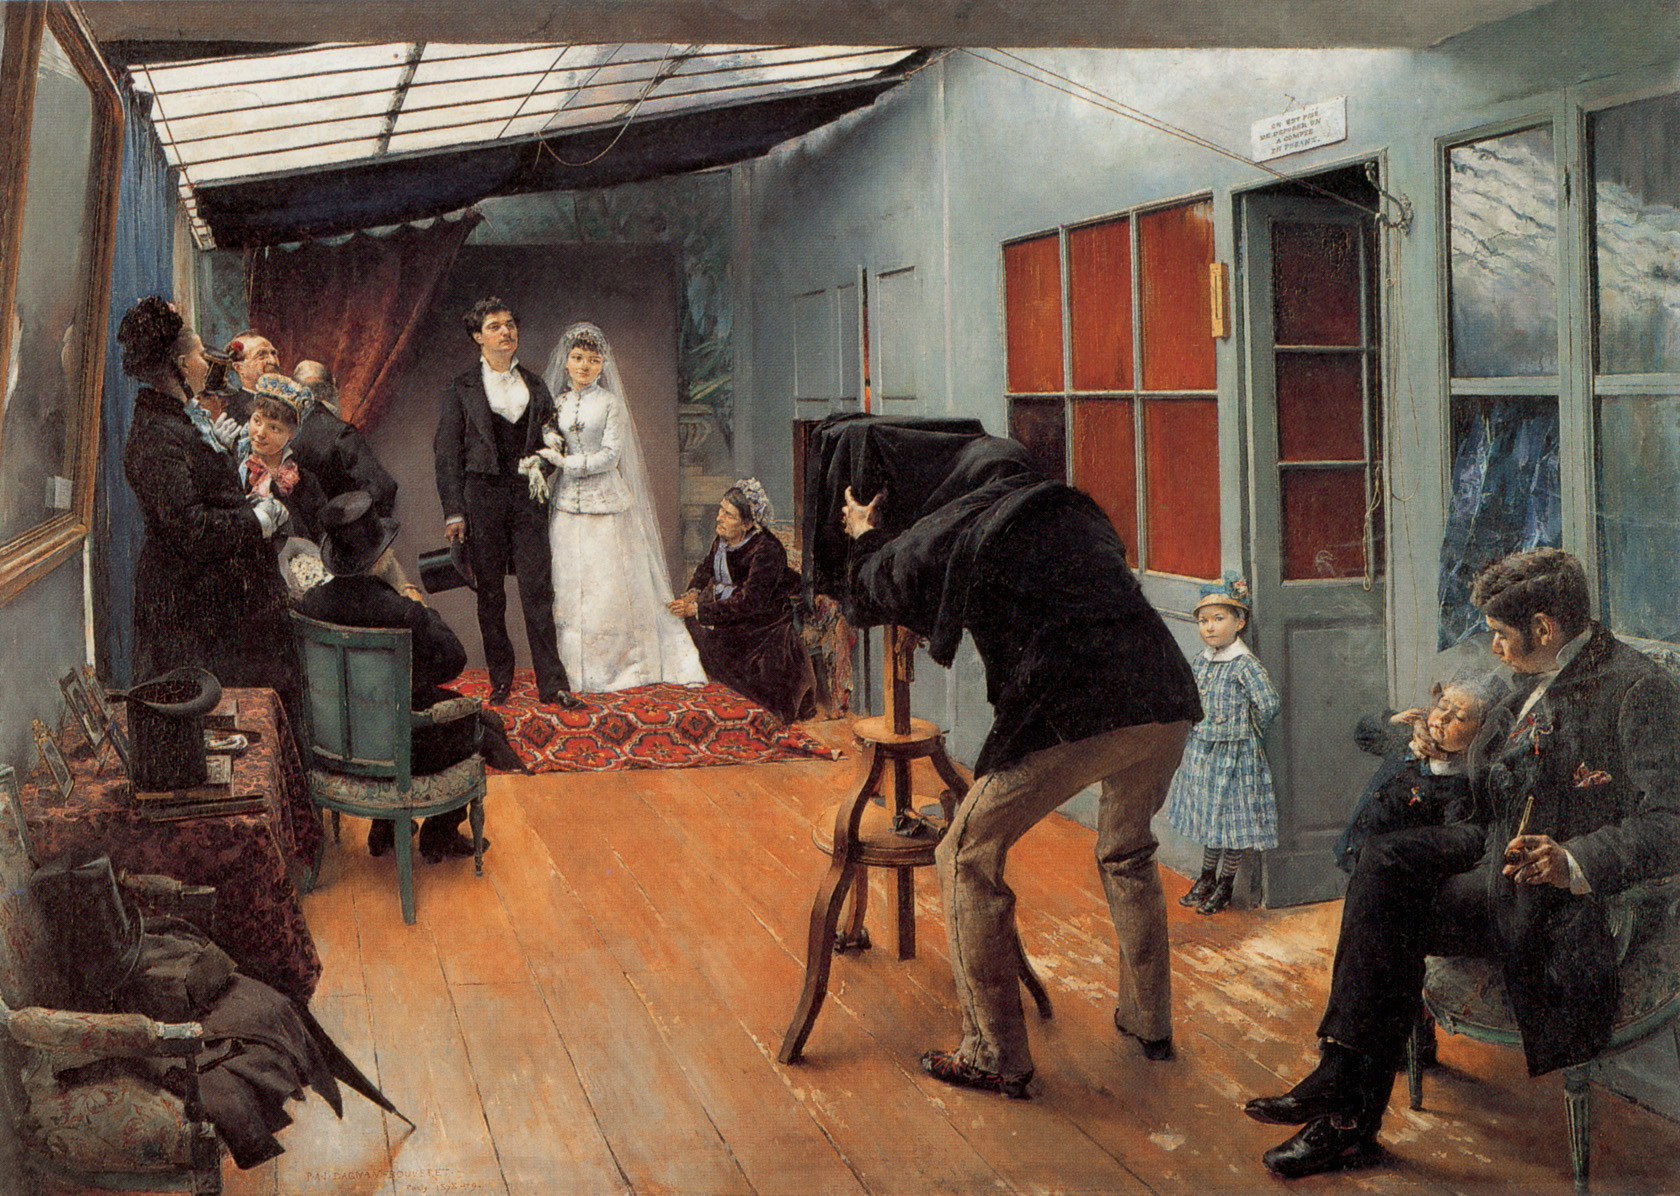 Dagnan-Bouveret, Pascal - Wedding Party At The Photographer's Studio, 1879